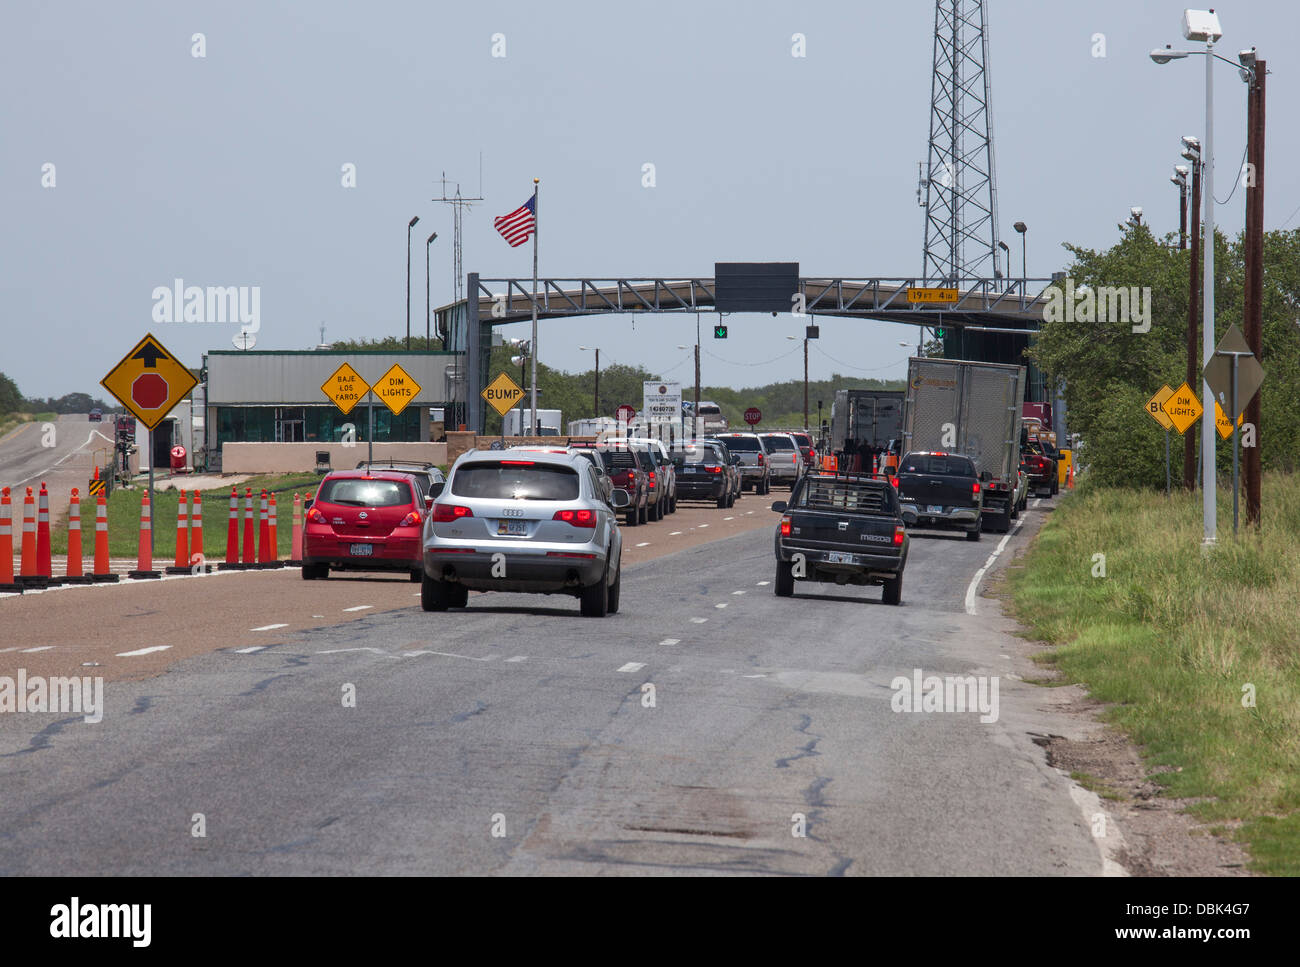 The Permanent U S Border Patrol Checkpoint On Highway 281 In Texas About 70 Miles North Of The Border